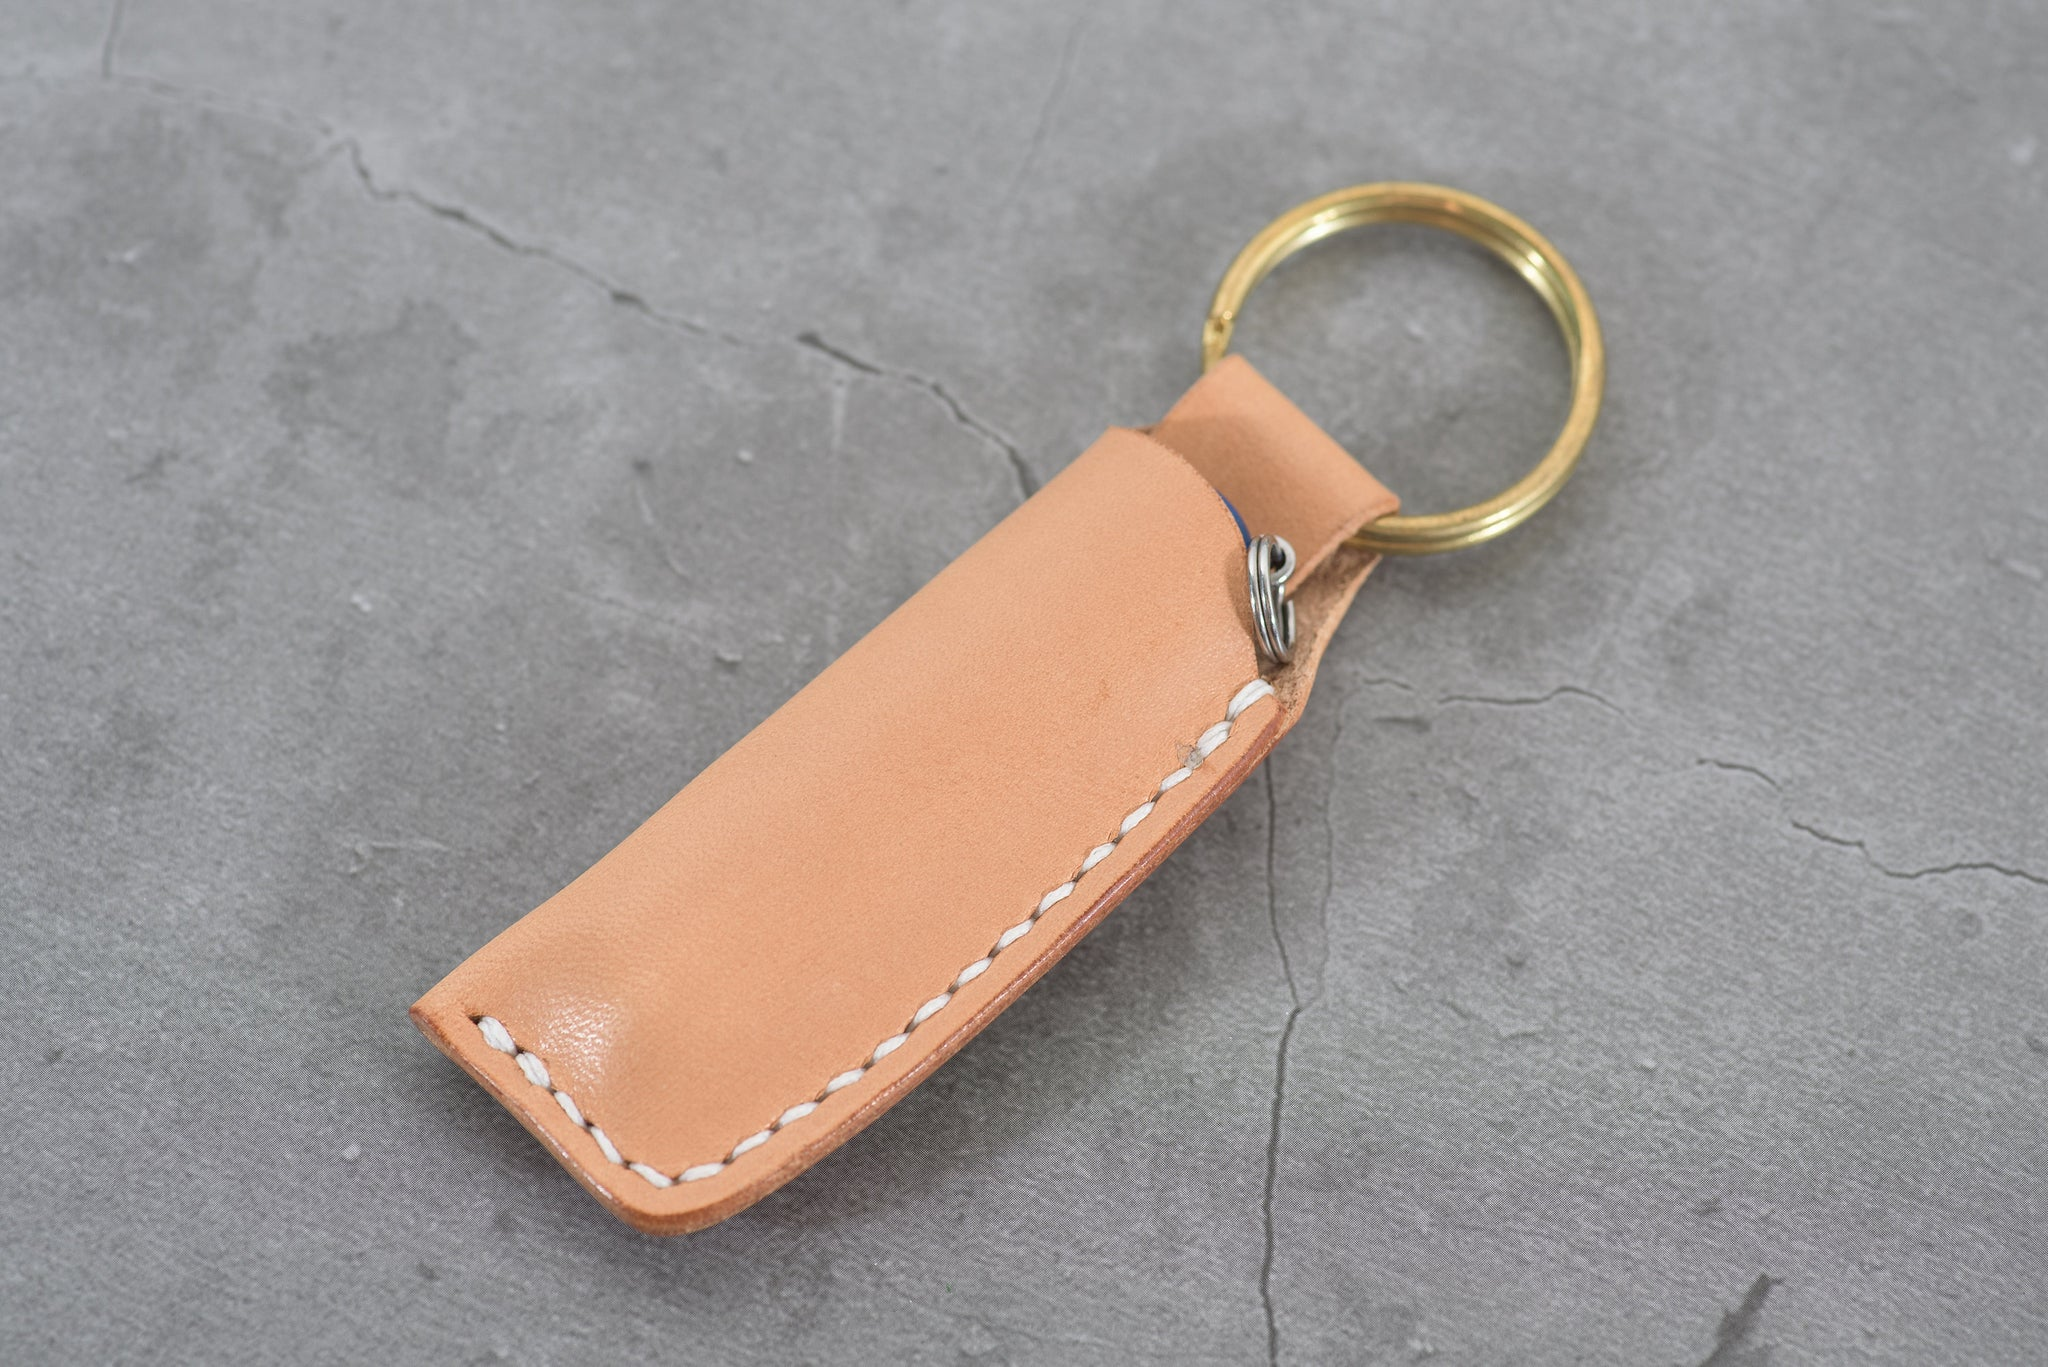 Natural Swiss Army Knife Leather Sheath & Key Chain for Victorinox Classic